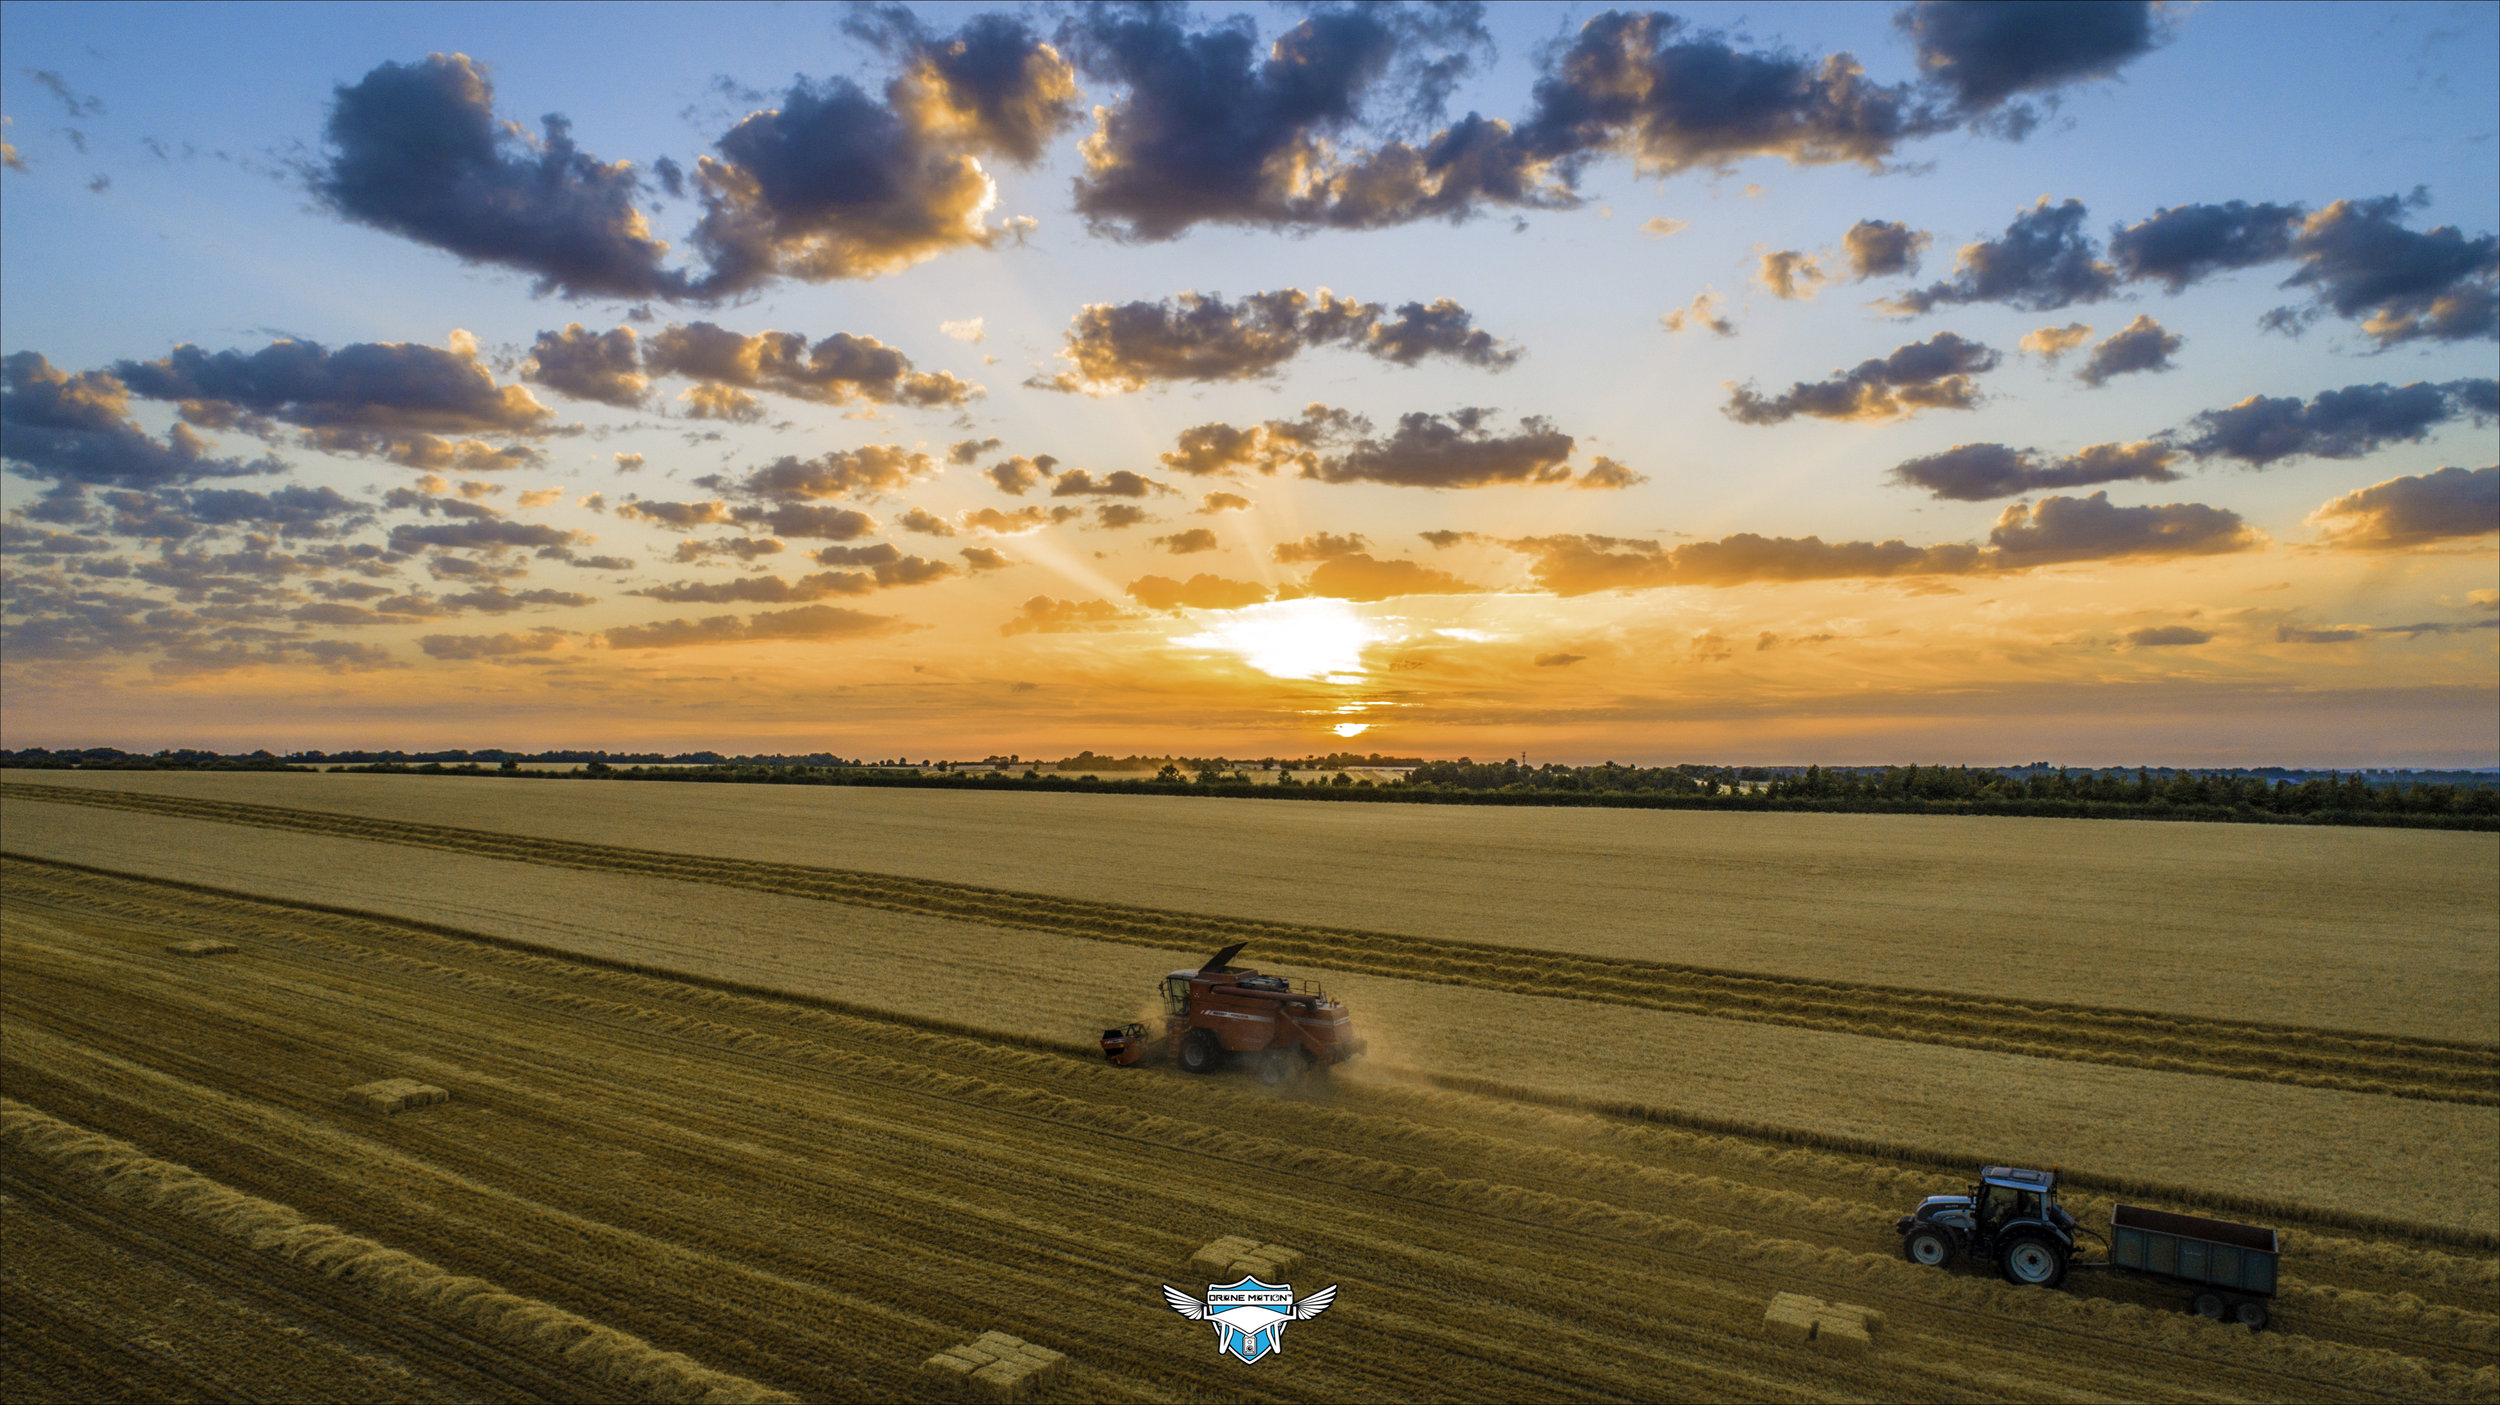 Sunset Shot of Combine & Tractor.jpg